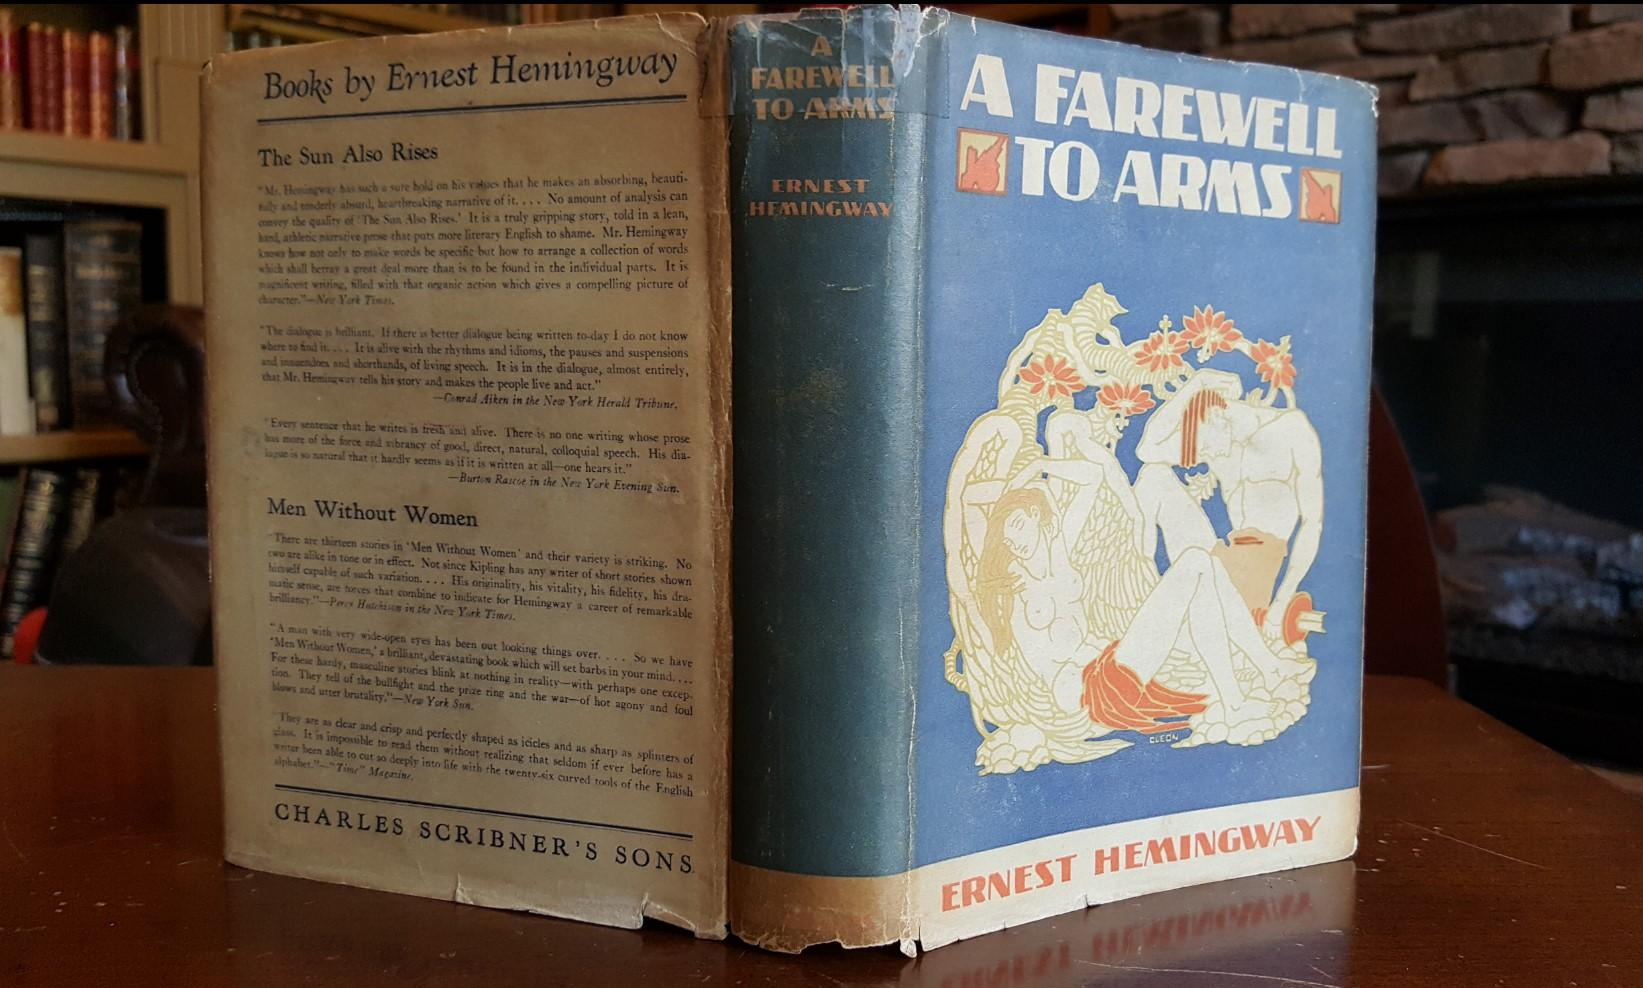 literary analysis of the love story a farewell to arms by ernest hemingway Ernest hemingway (1899-1961) was one of the twentieth century's most important novelists, as well as a brilliant short story writer and foreign correspondent his body of work includes the novels a farewell to arms , for whom the bell tolls , and the sun also rises.